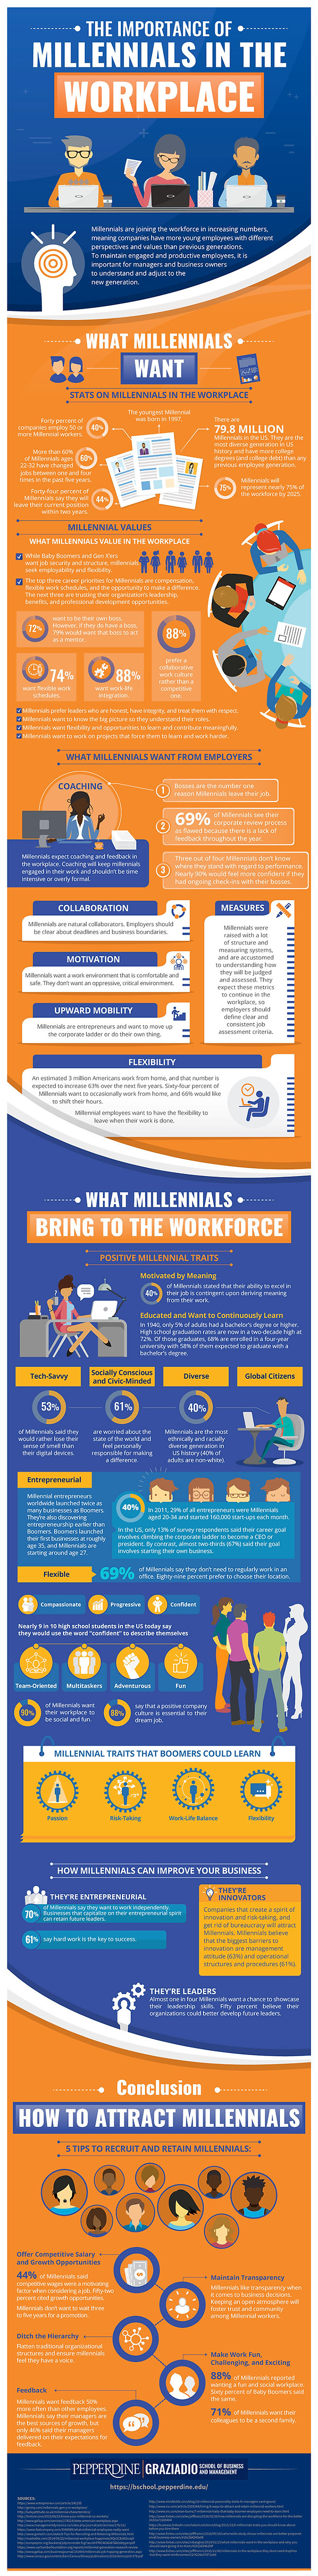 the-importance-of-millennials-in-the-wor